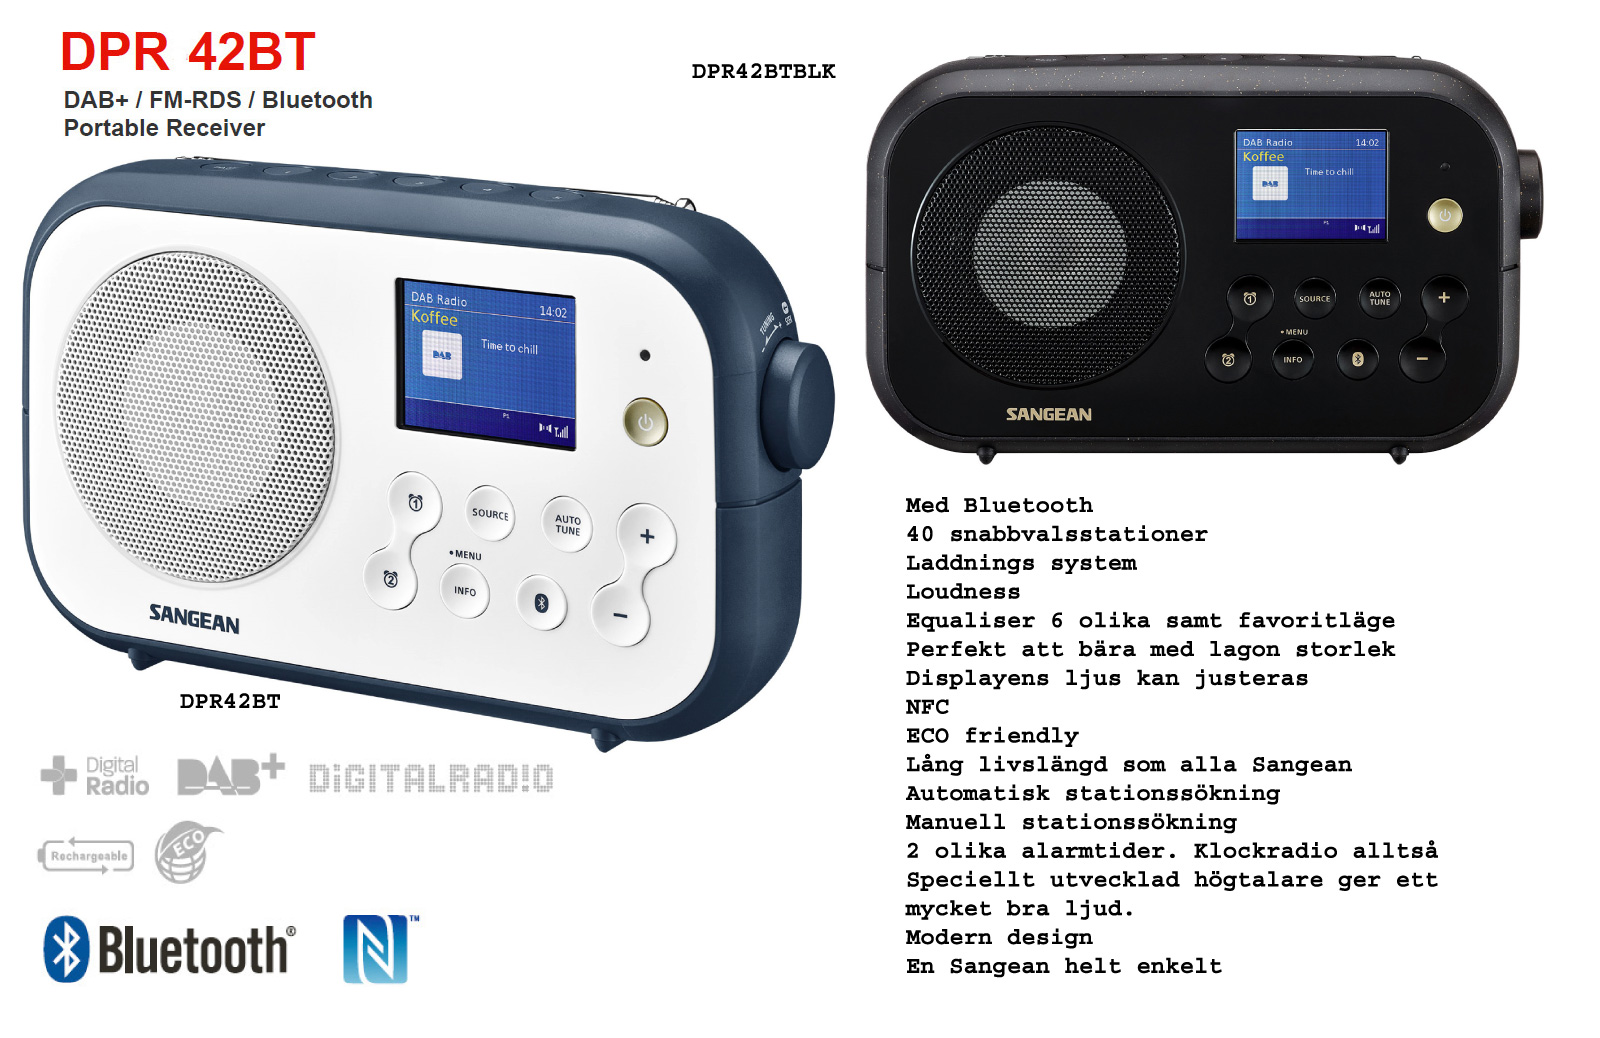 Sangean Bluetooth DAB radio FM